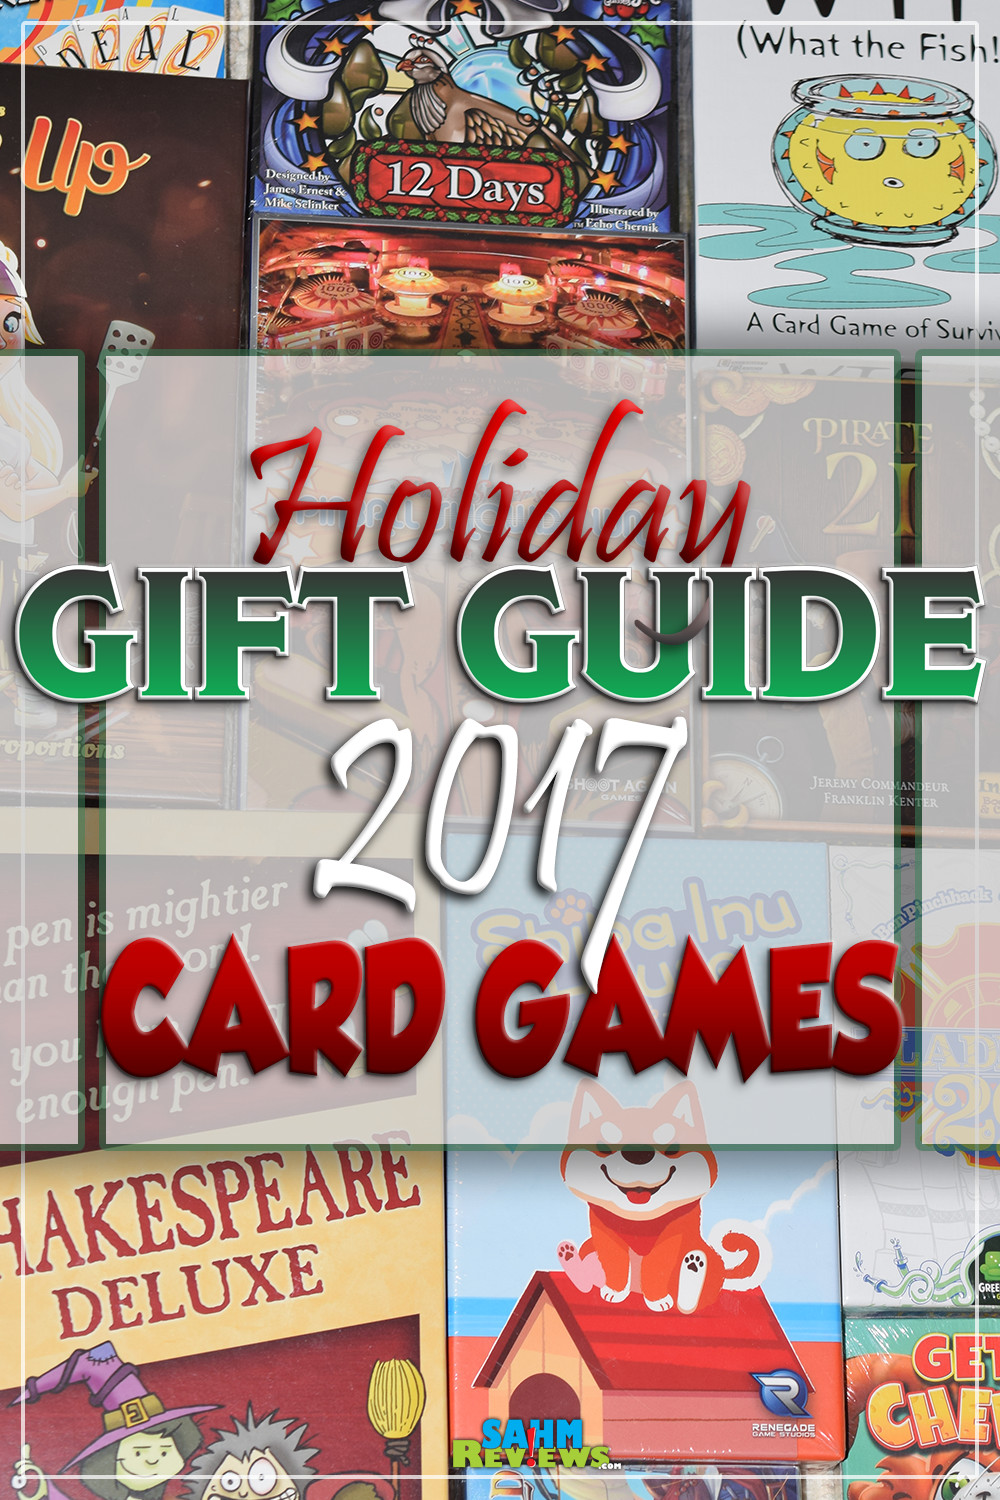 There aren't many things more fun than sitting down with family and playing a great card game. Here's a handful of ideas in our annual Gift Guide! - SahmReviews.com